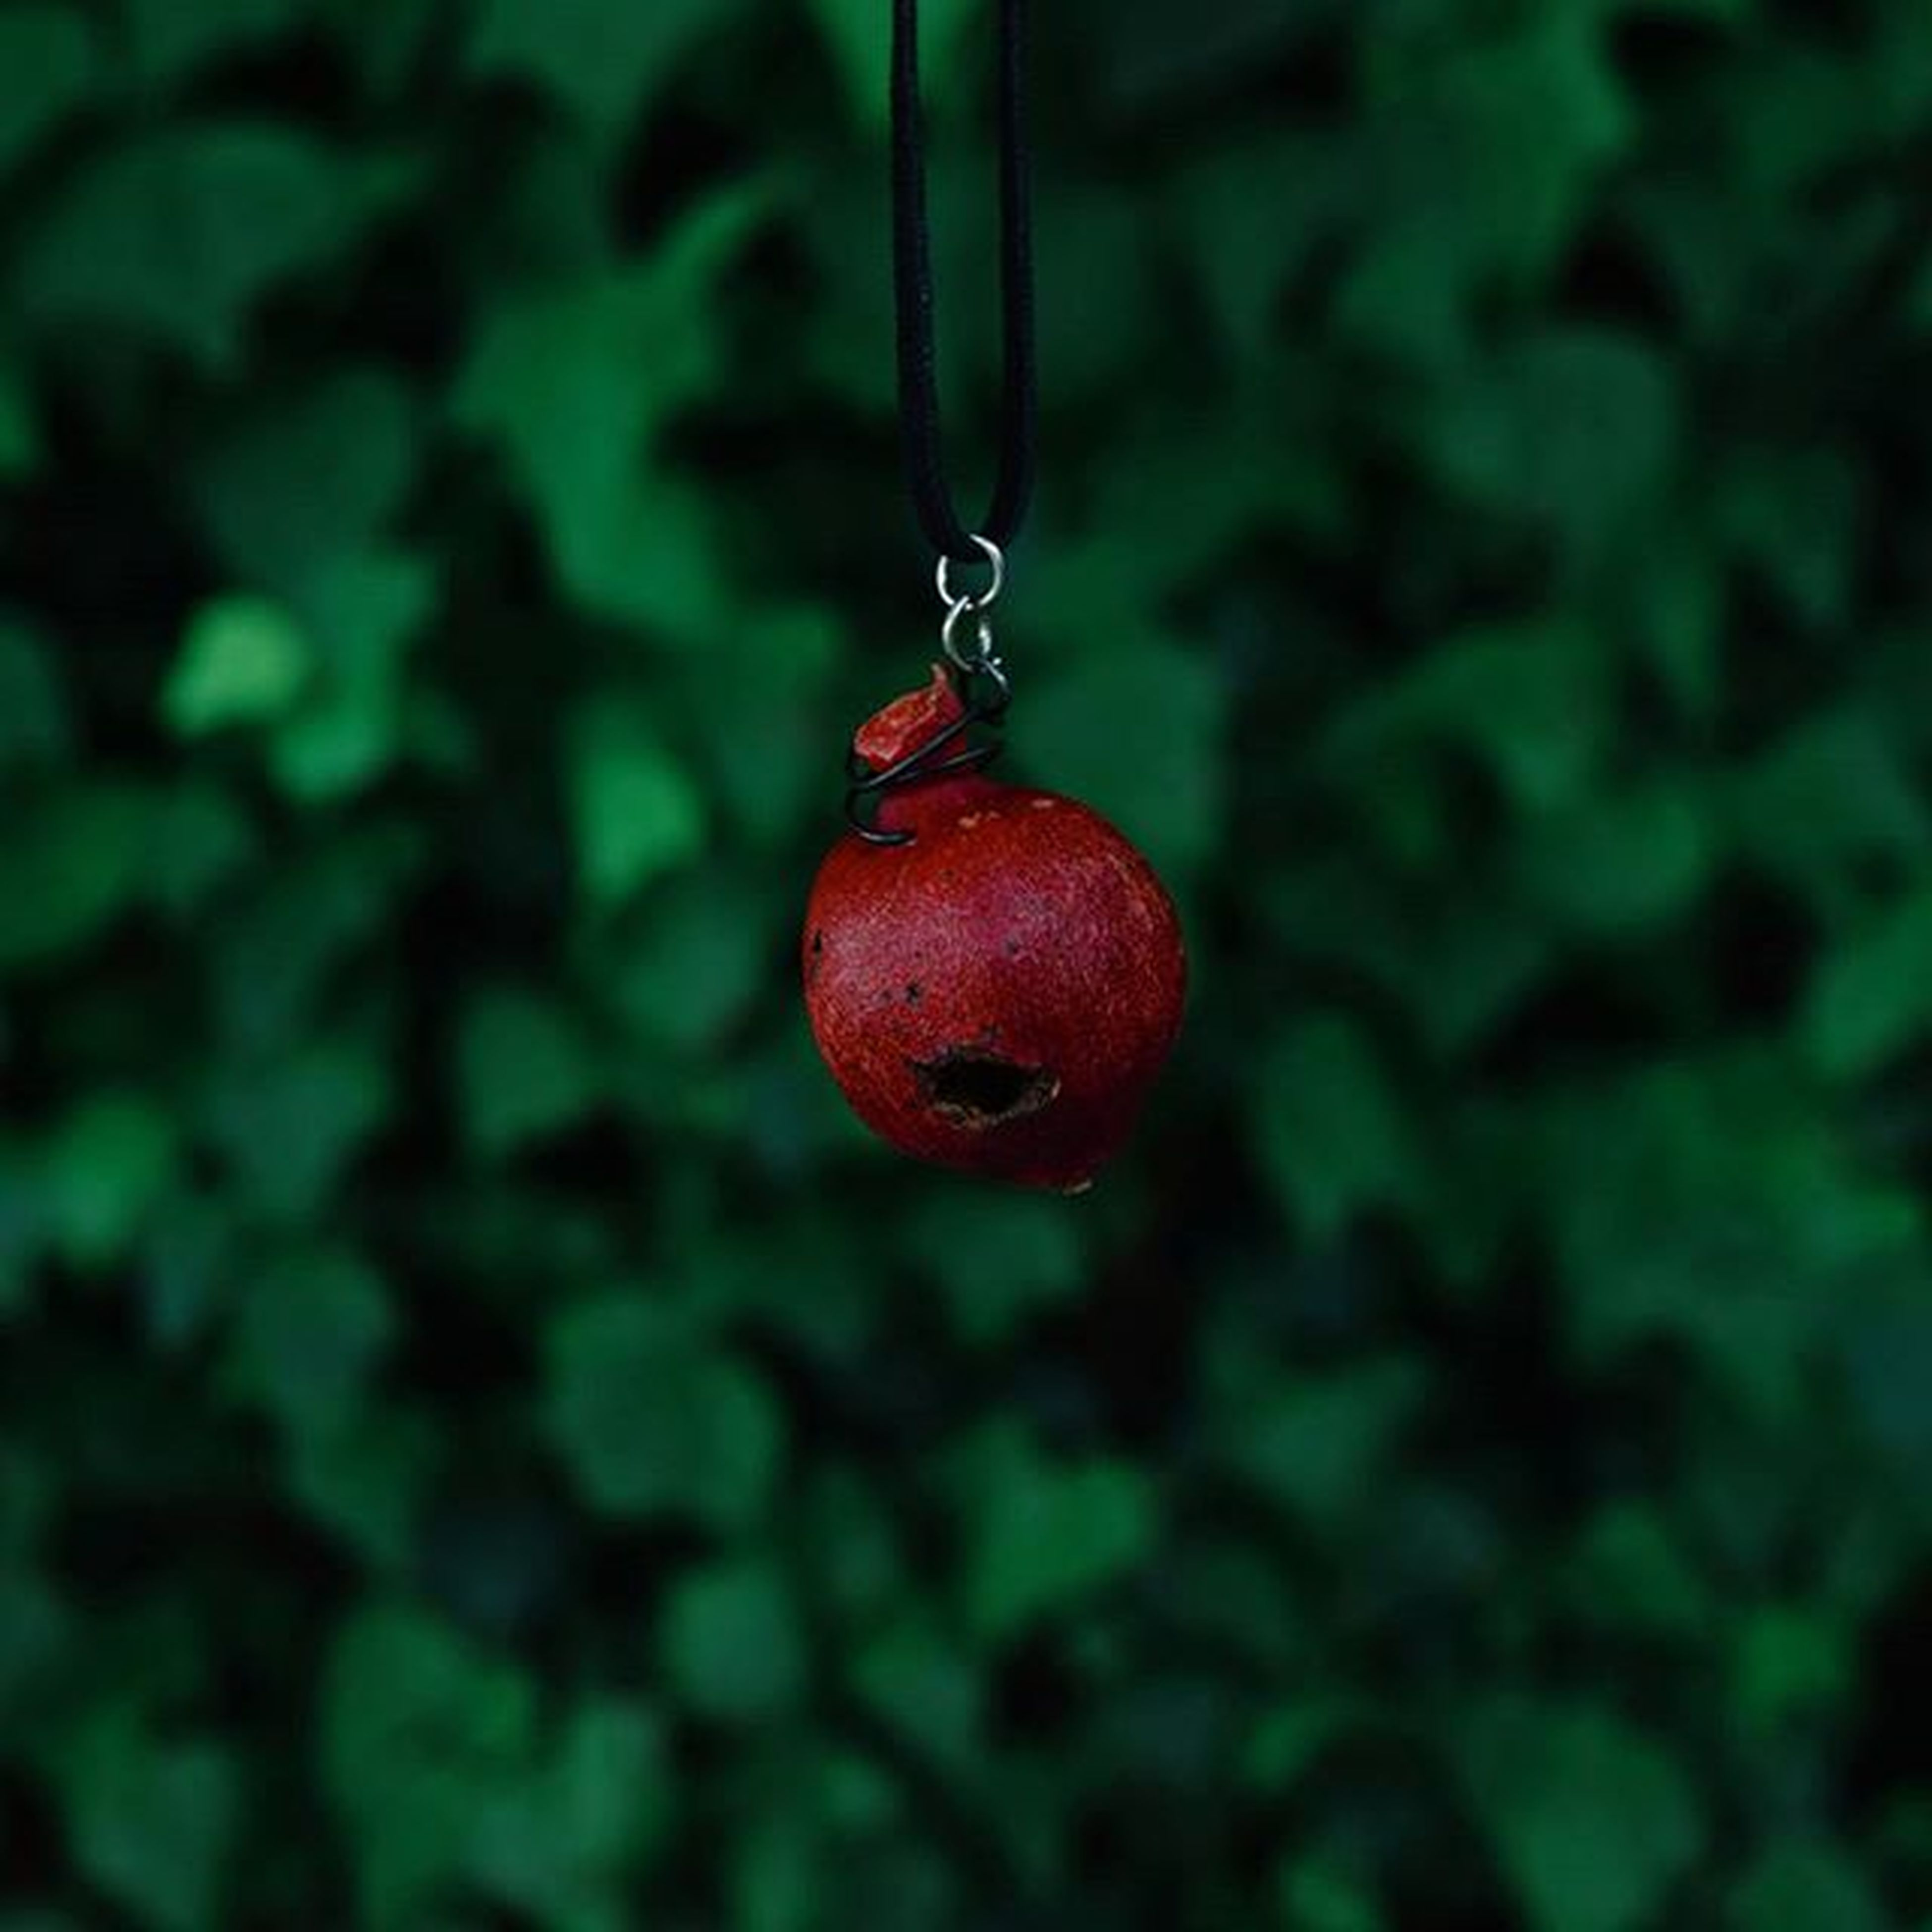 red, fruit, focus on foreground, close-up, hanging, tree, food and drink, selective focus, branch, animal themes, leaf, nature, food, no people, ripe, one animal, berry fruit, growth, day, outdoors